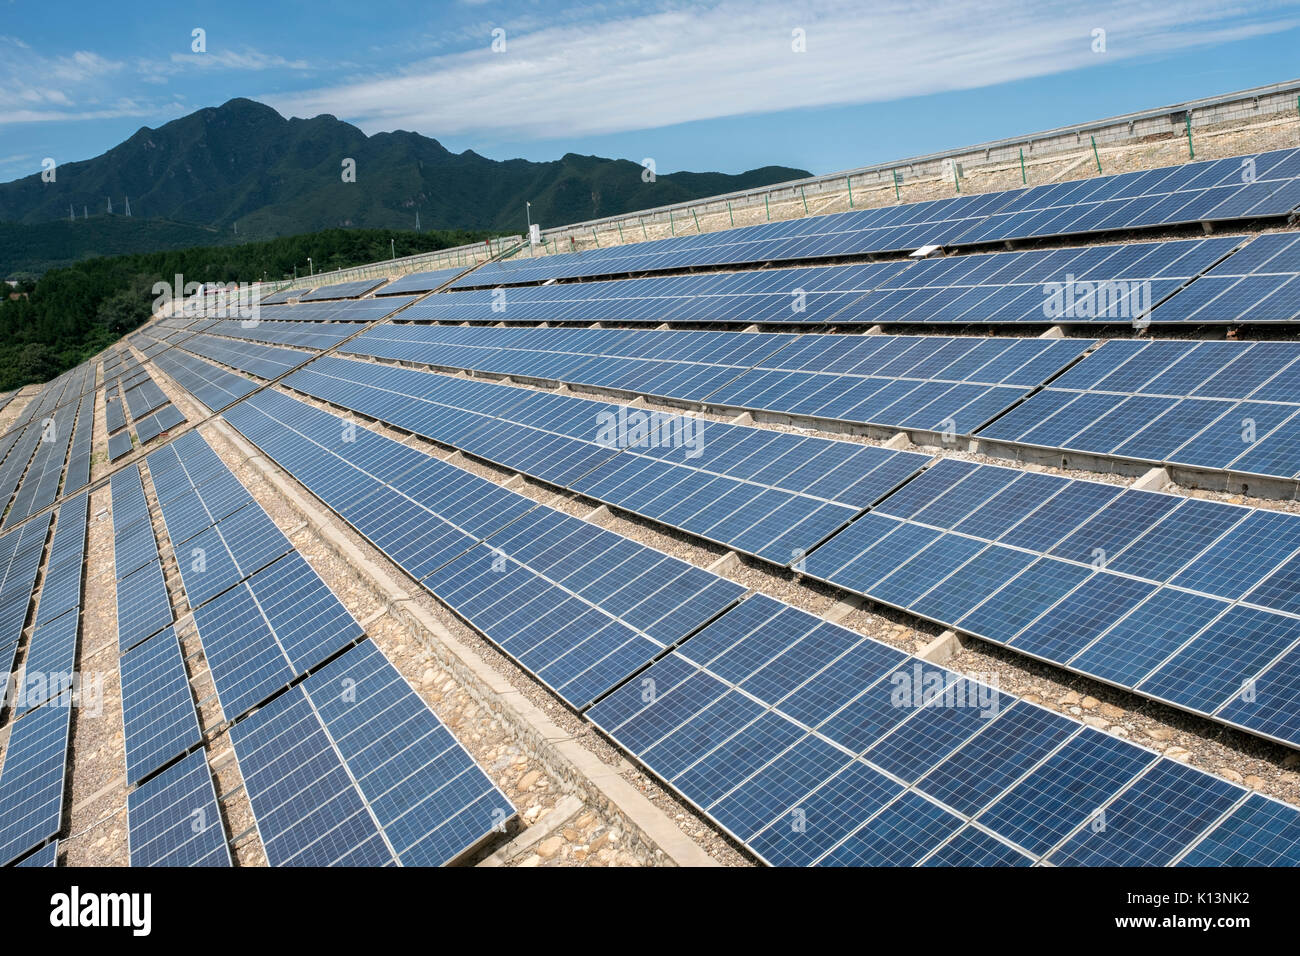 Photovoltaic solar panels on the dam of Yanqi Lake in Huairou, Beijing, China. 24-Aug-2017 - Stock Image